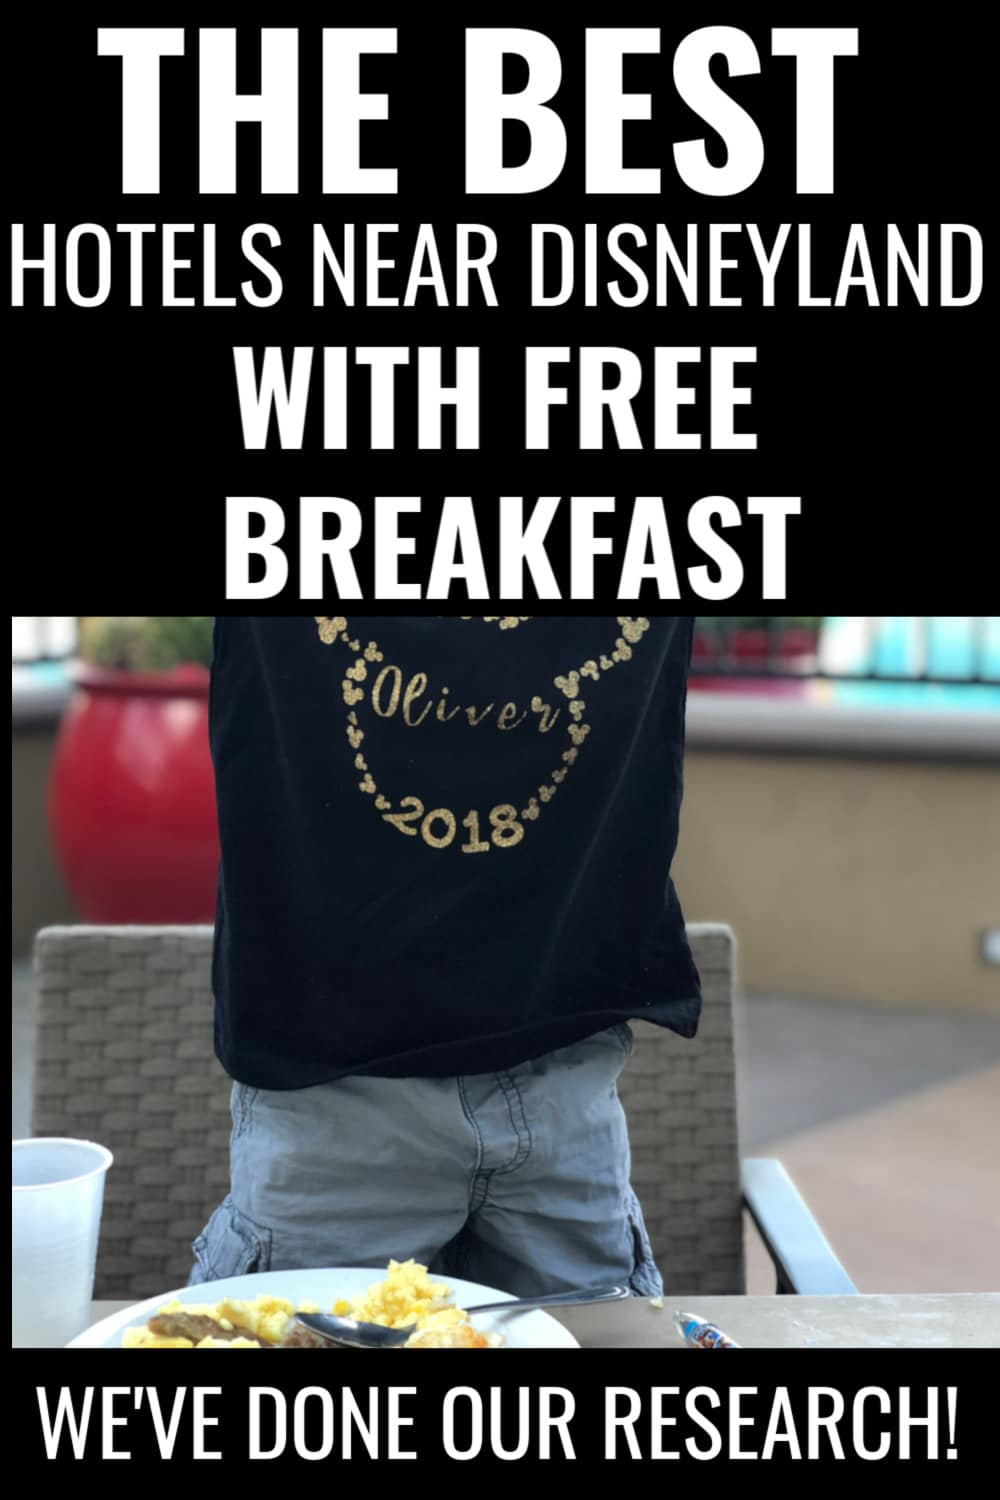 Looking for the best hotels near Disneyland with free breakfast? We've got you covered! Here is your guide to finding a free hot hotel breakfast buffet near Disneyland with our top five choices. via @clarkscondensed